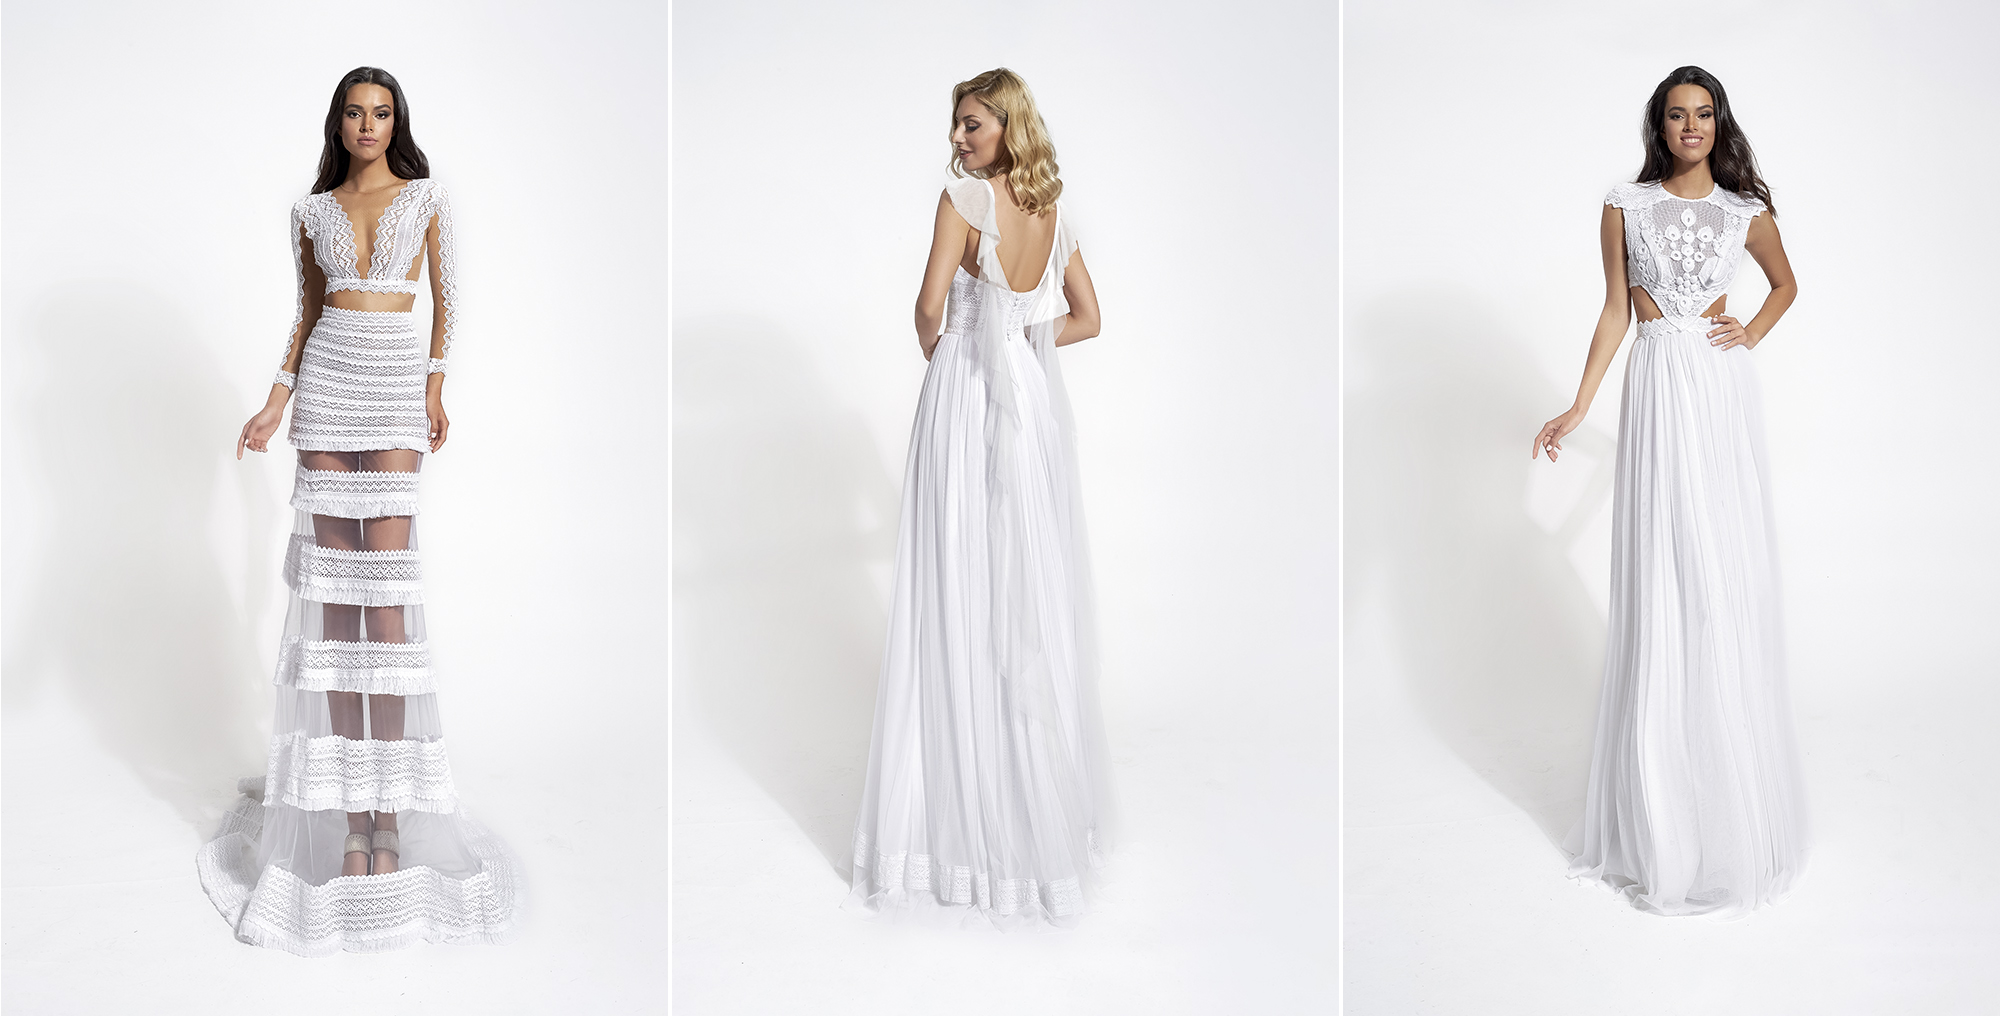 Atelier Zolotas wedding dresses | Hellenic Vintage White Collection